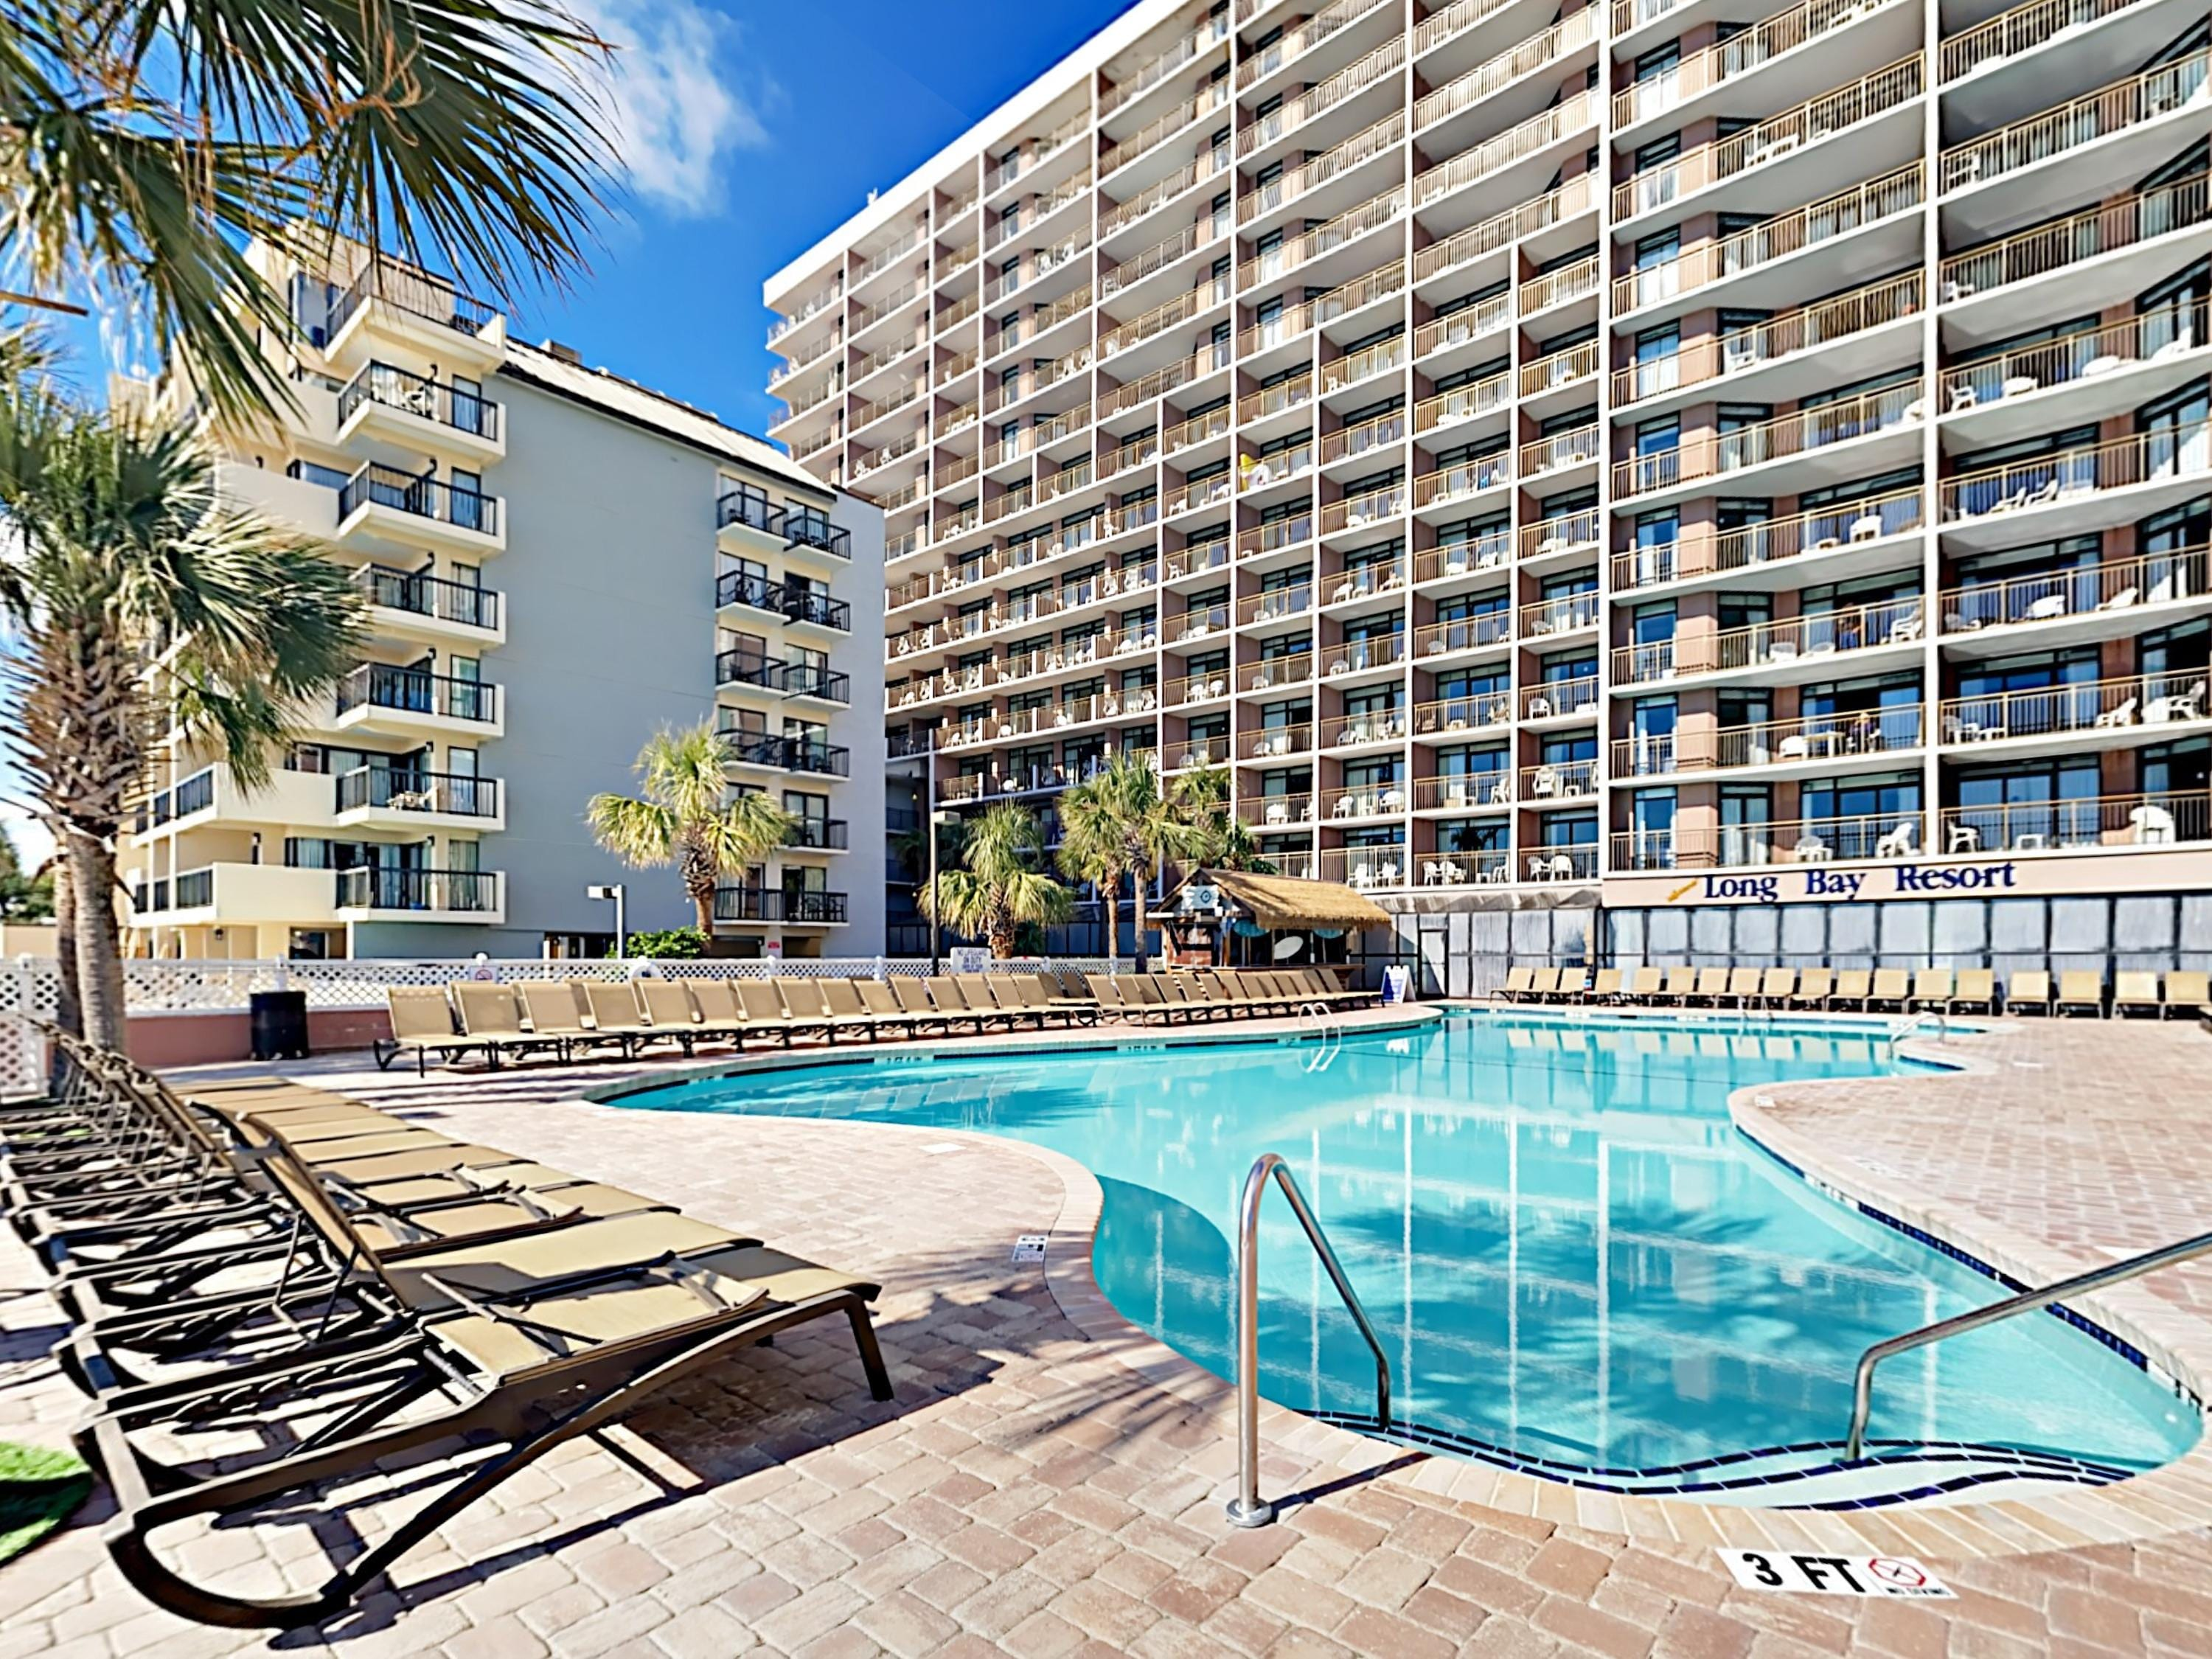 Property Image 2 - Classic Beachfront Condo with Resort Amenities